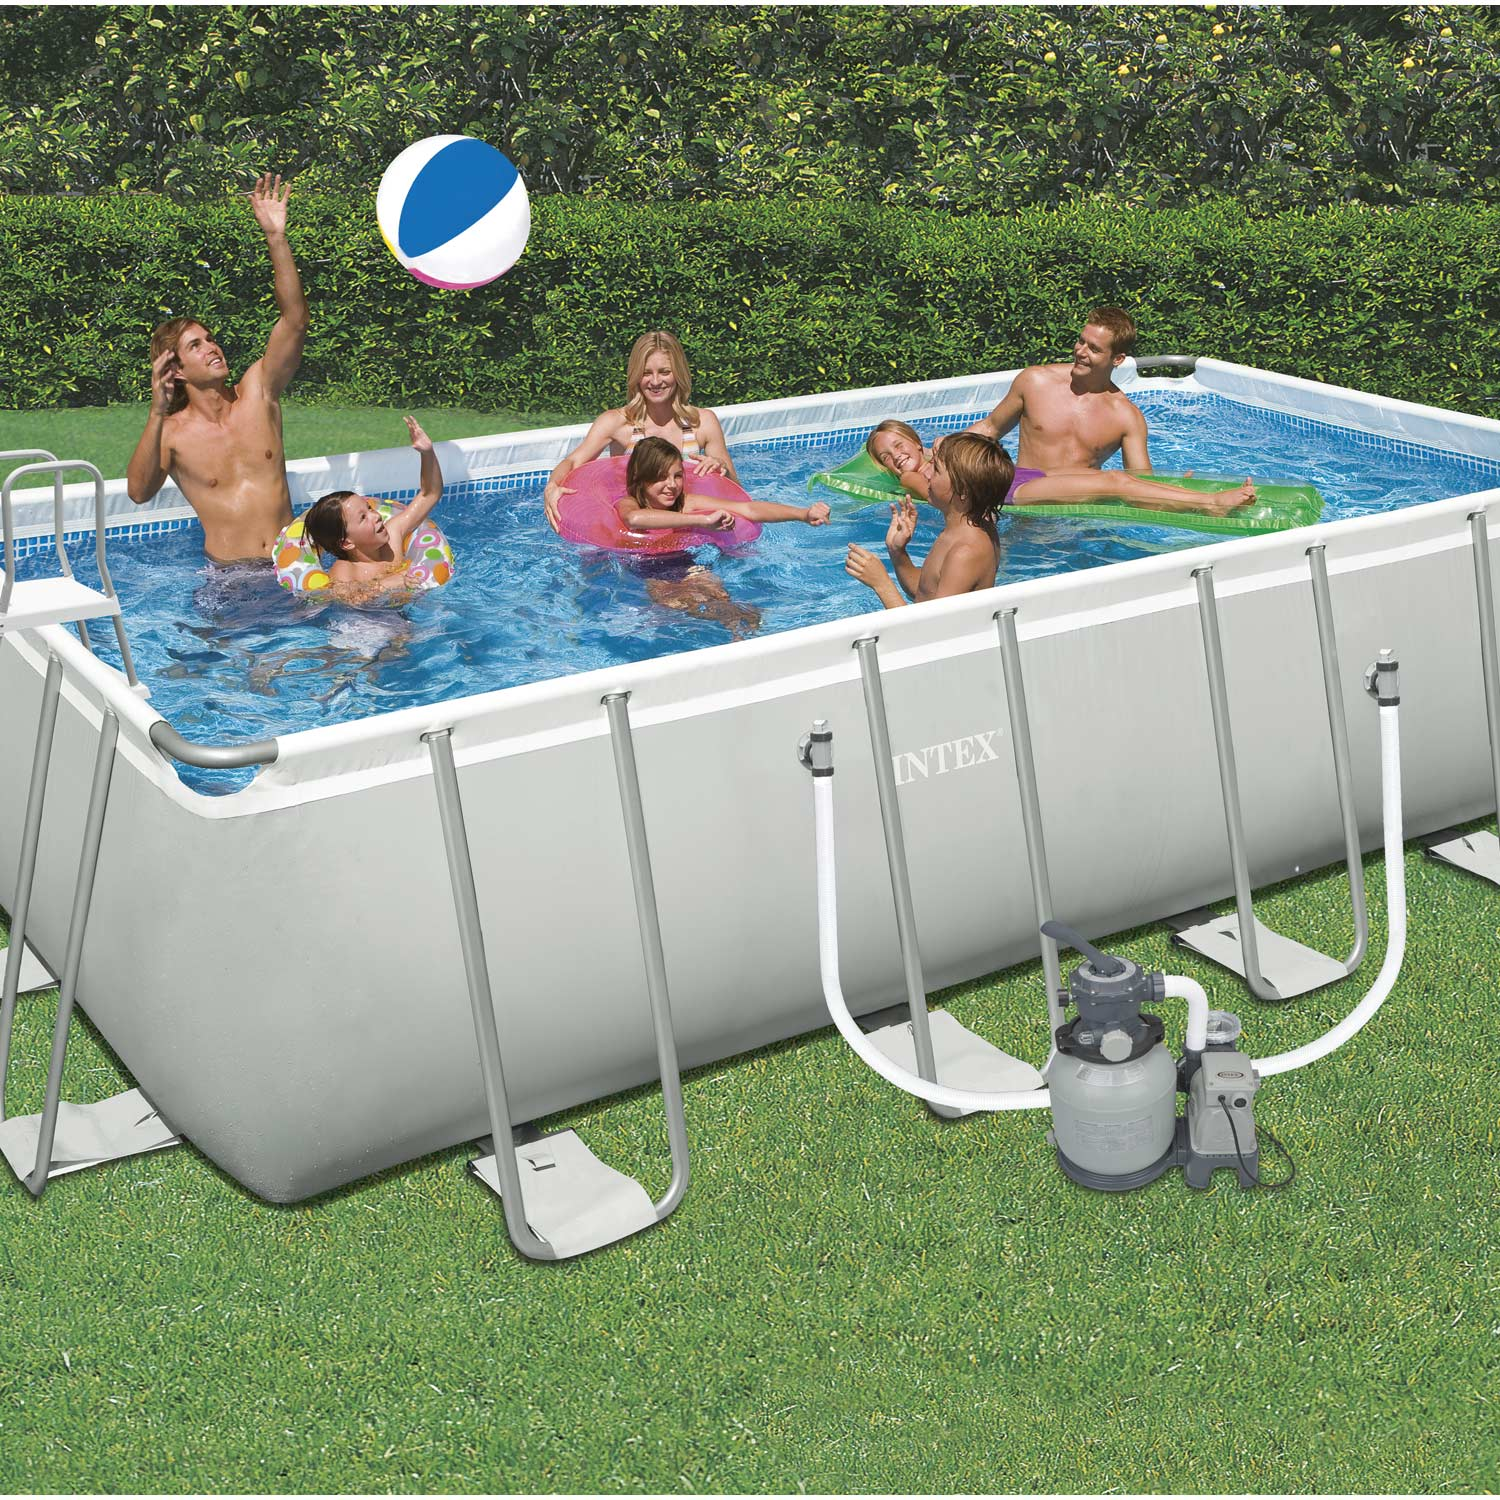 Piscine hors sol autoportante tubulaire intex l x l for Rechauffeur piscine hors sol intex